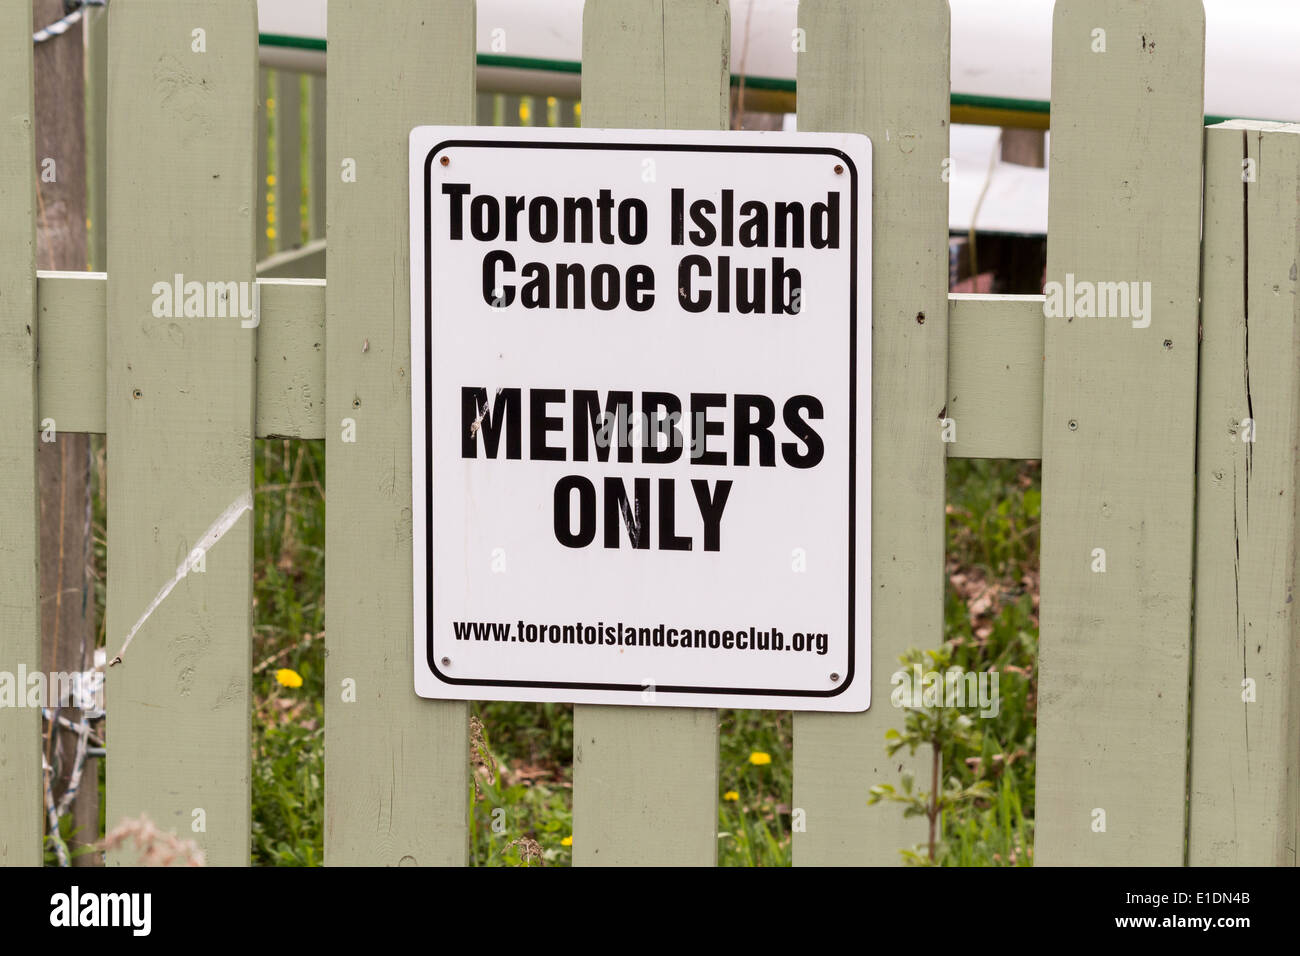 Member's only sign on fence at the Toronto Island Canoe Club - Stock Image